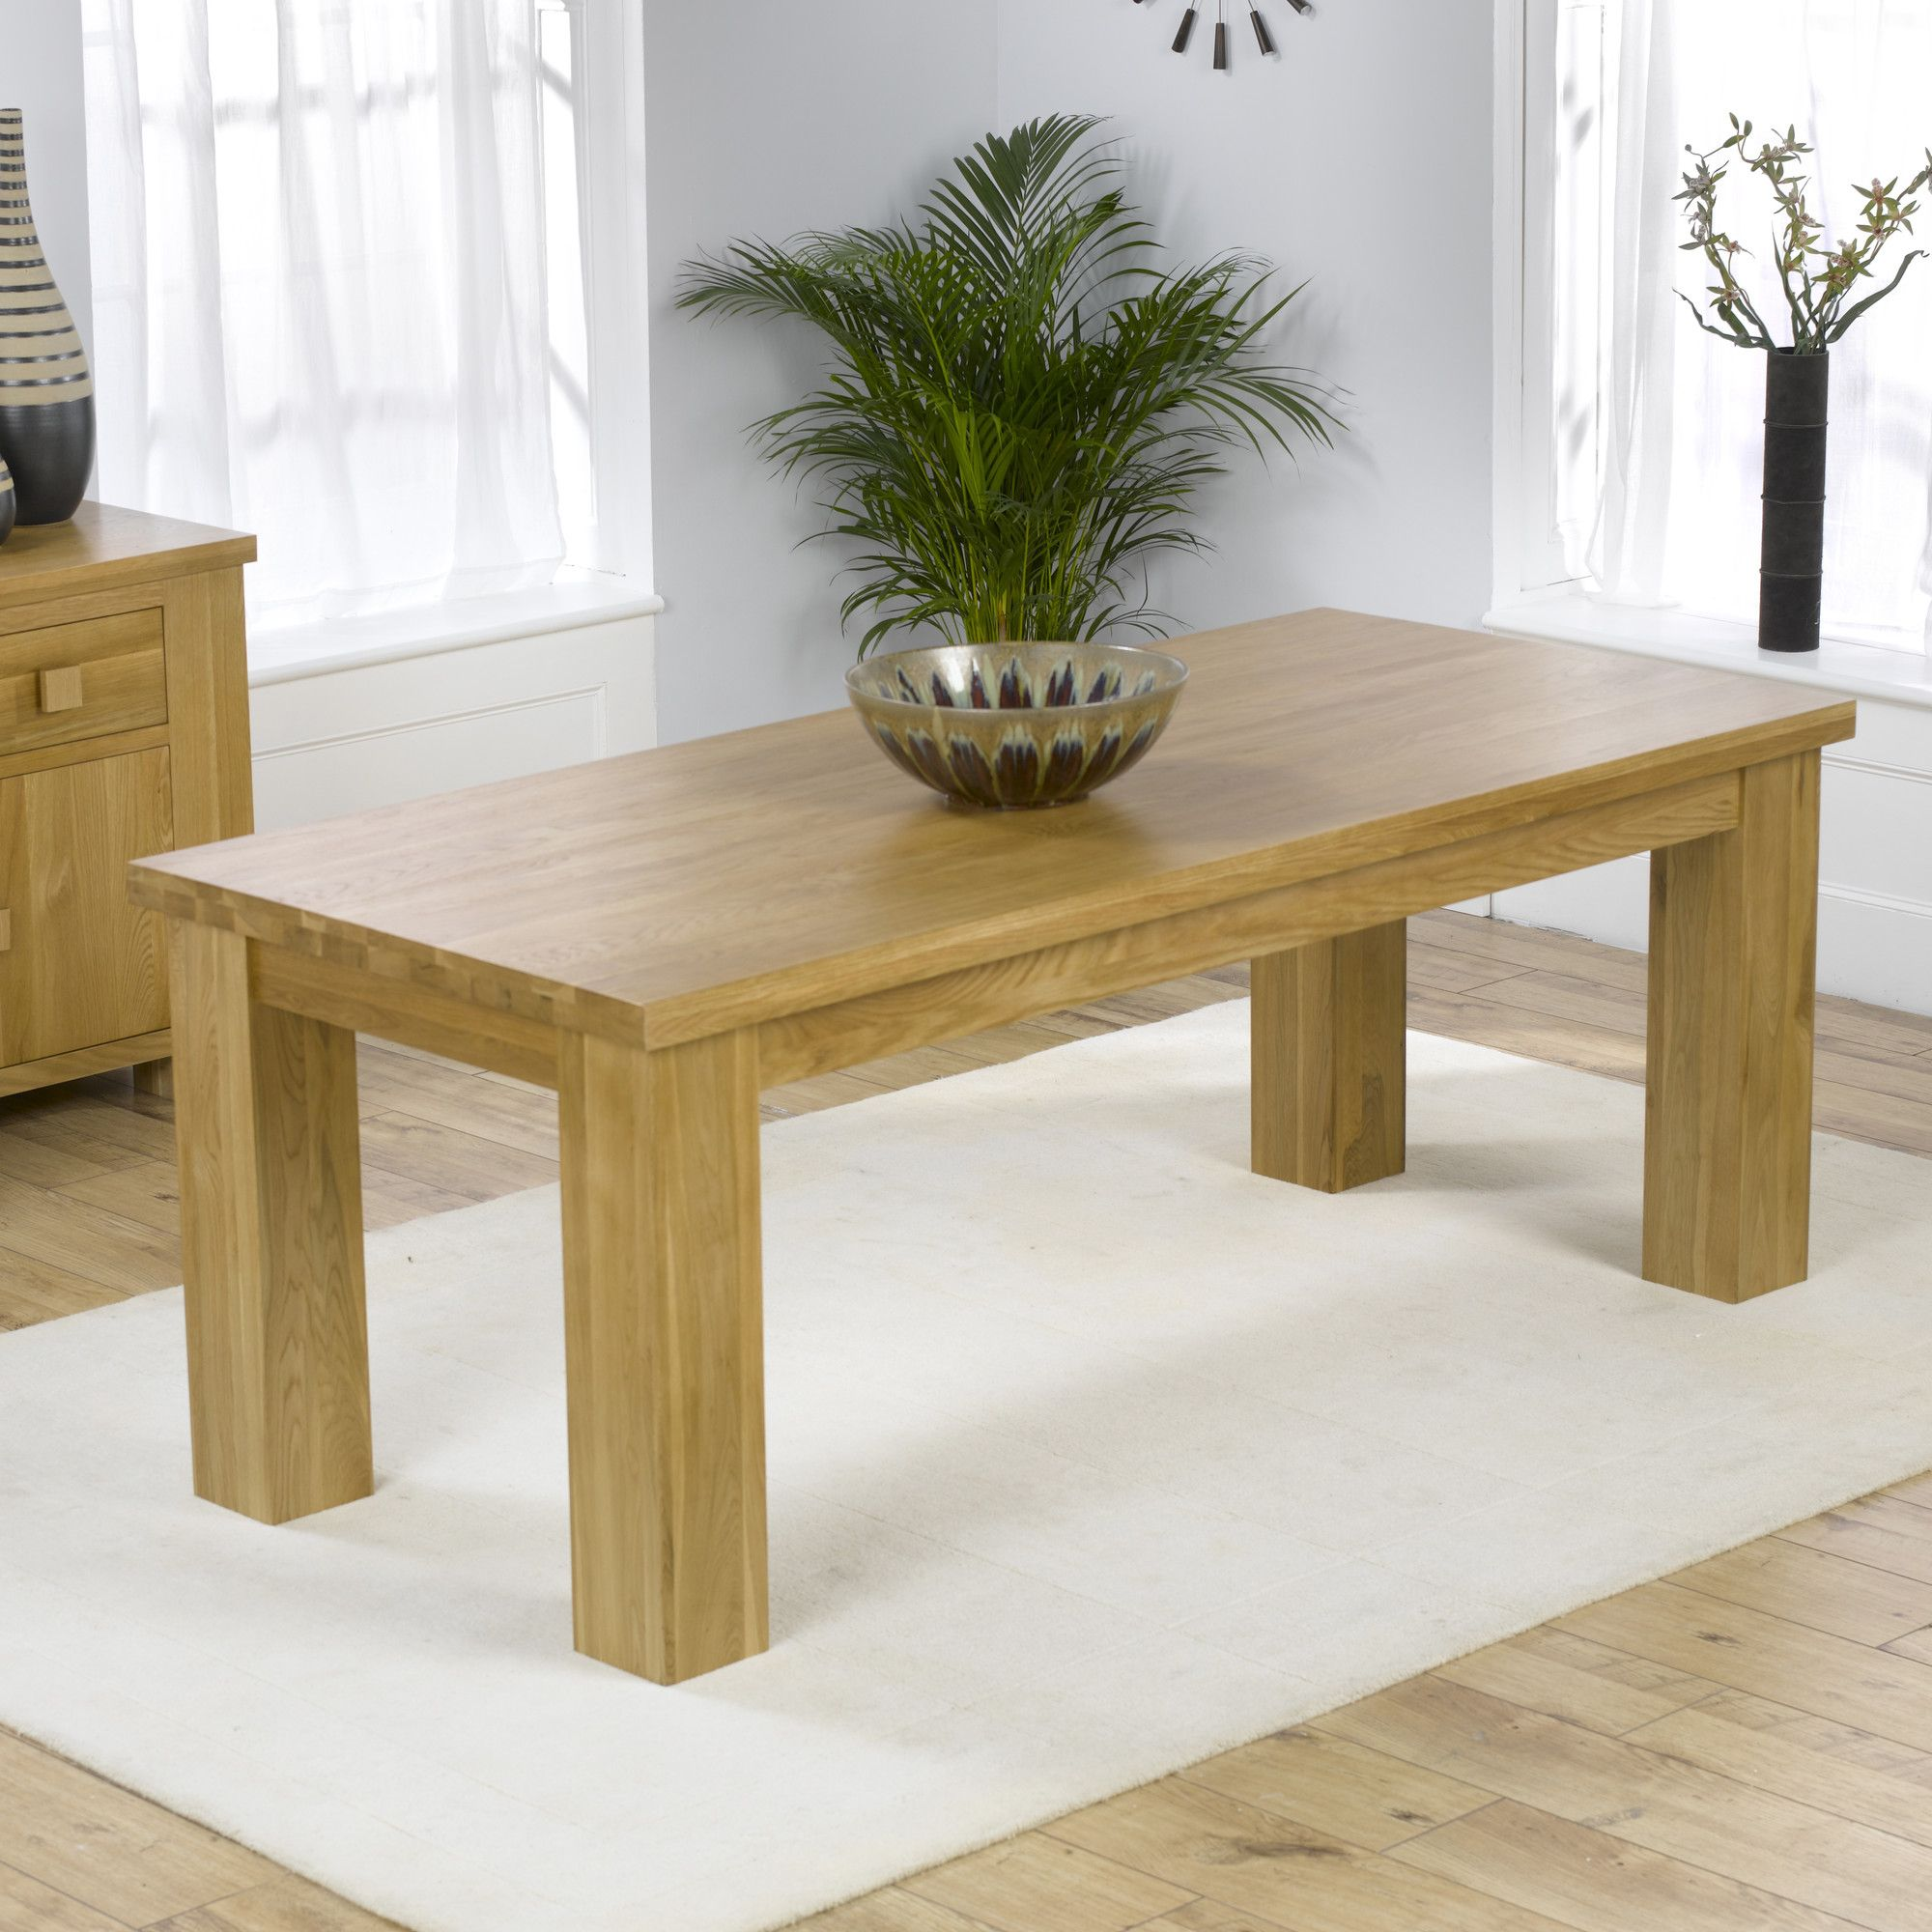 Mark Harris Furniture Barcelona Solid Oak Dining Table - 200 cm